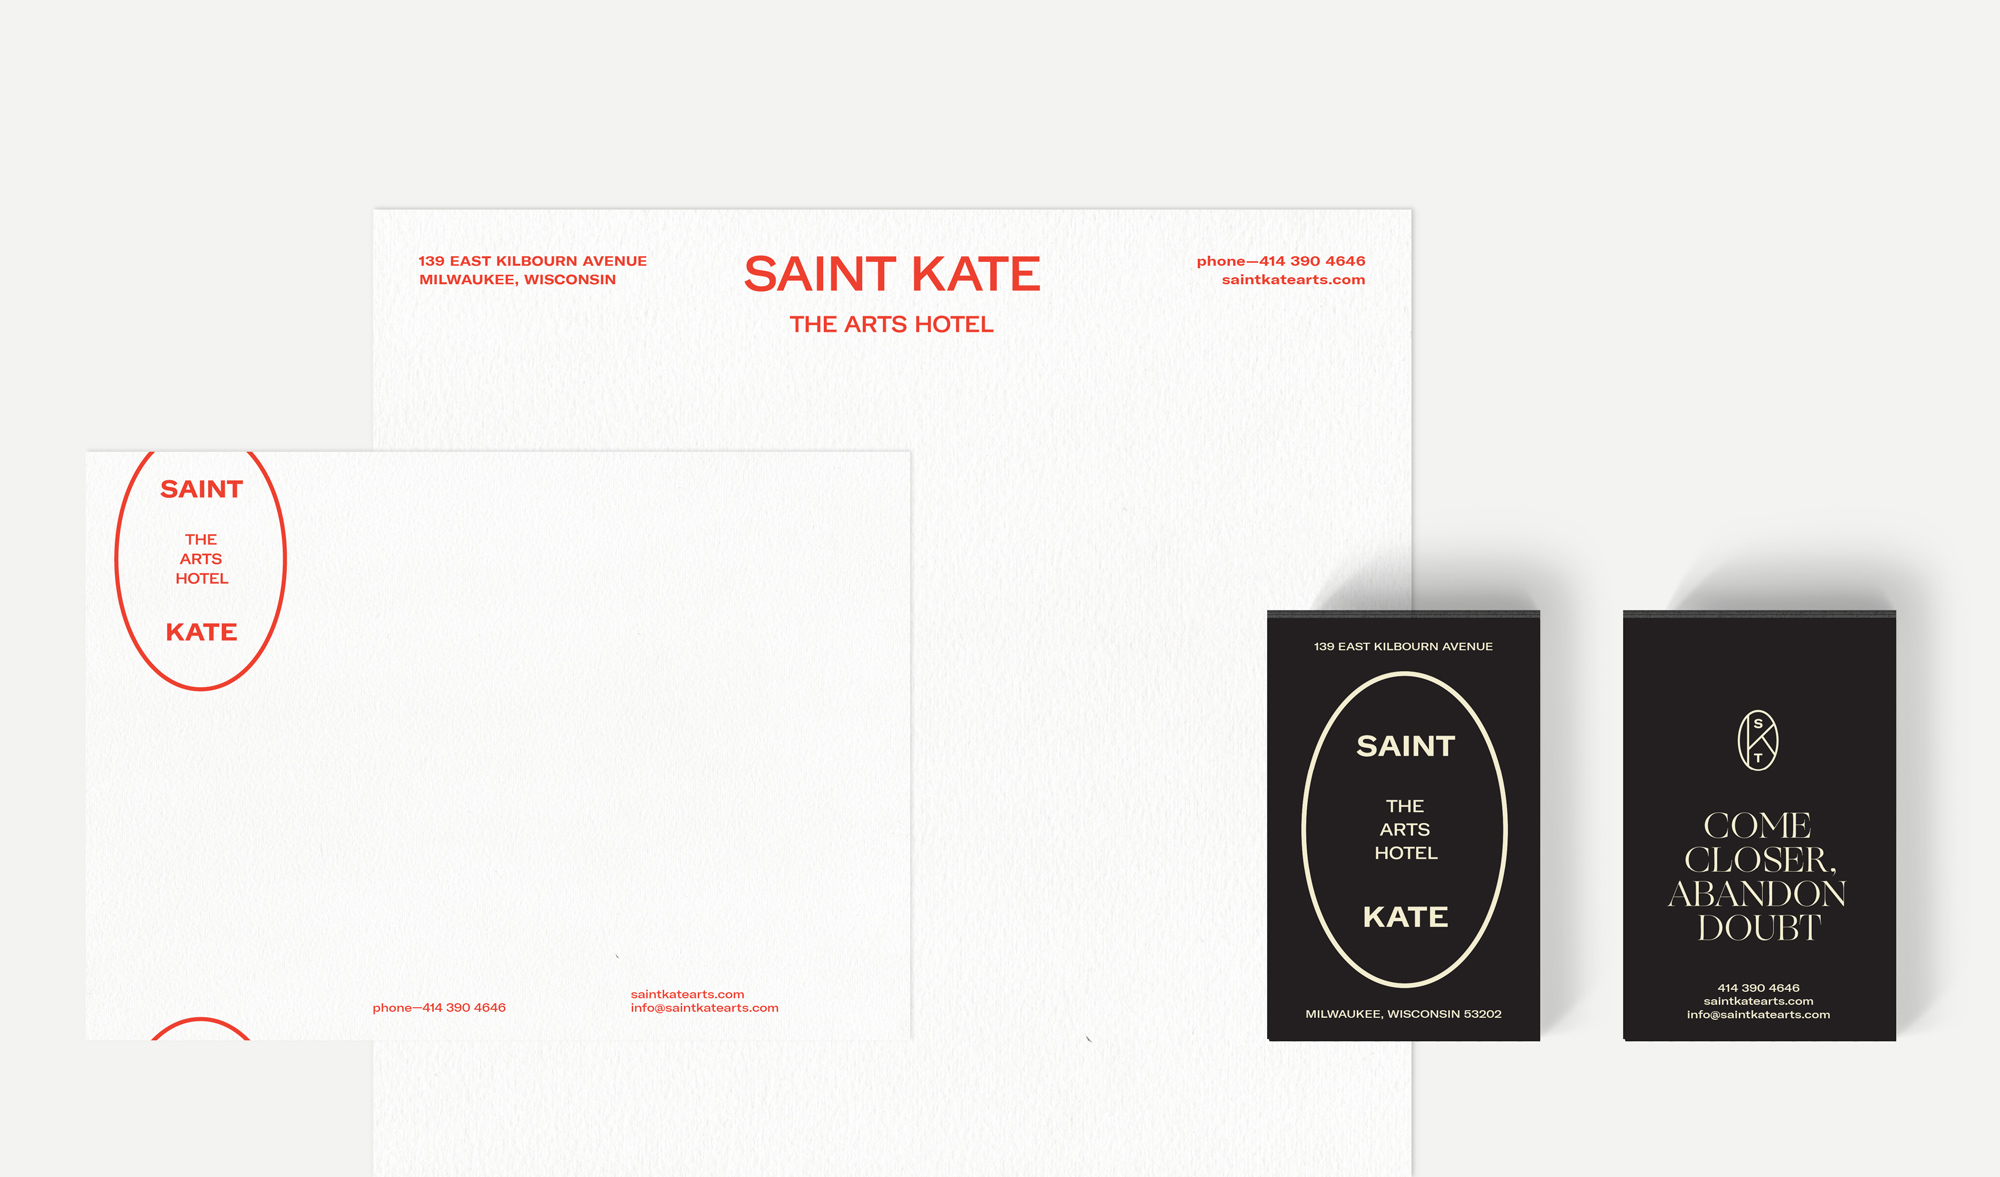 Brand New: New Logo and Identity for Saint Kate Arts Hotel